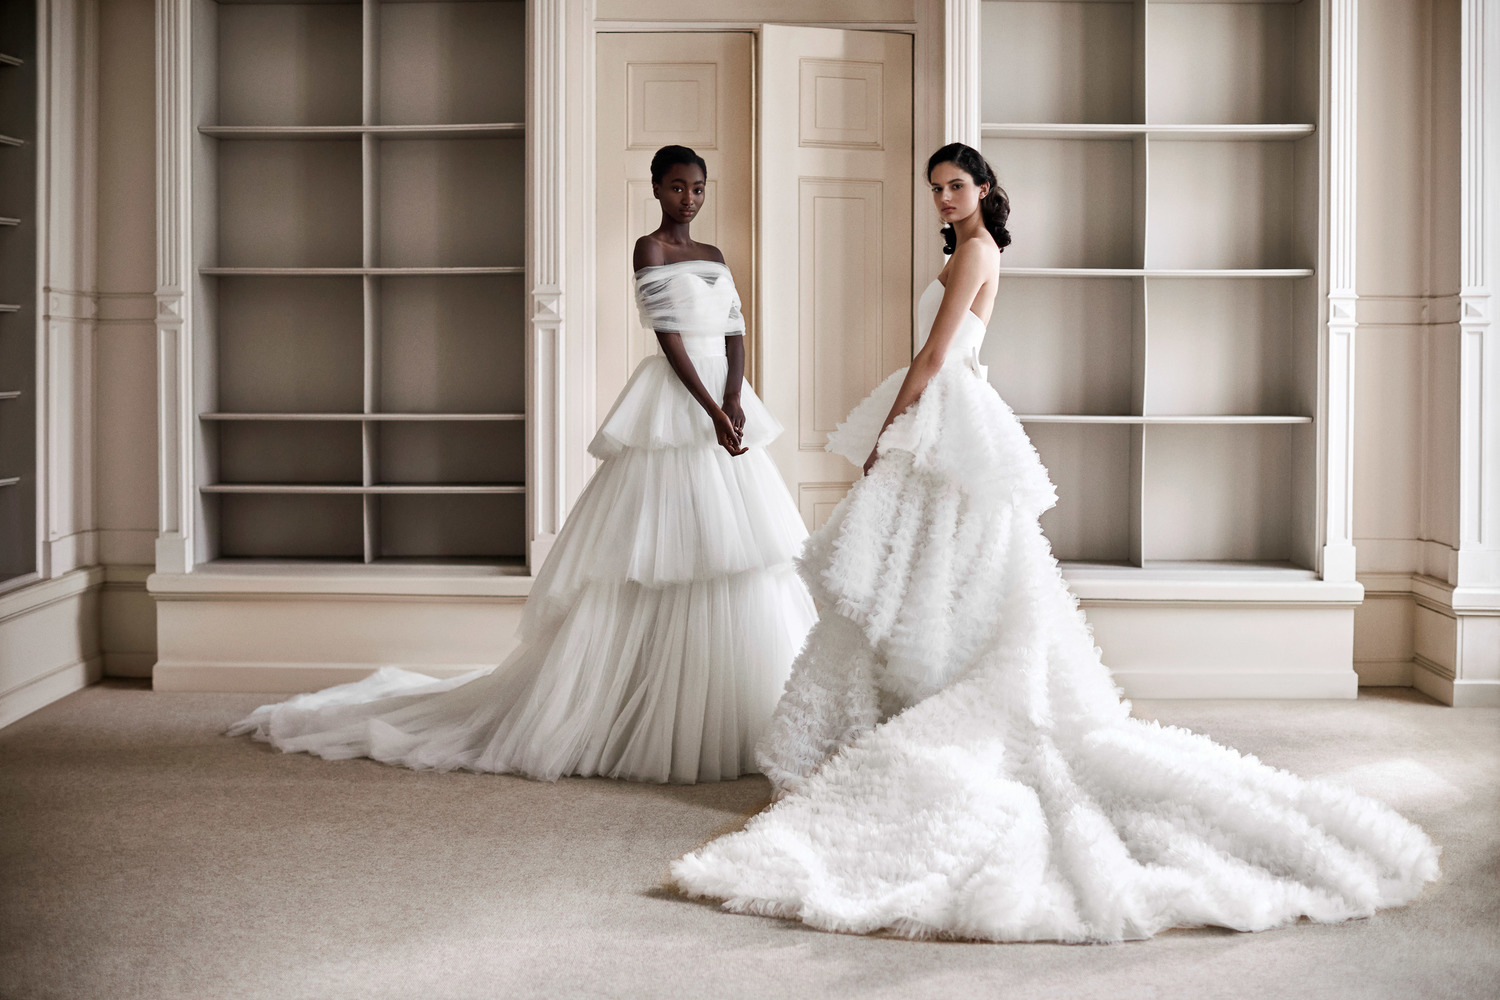 tulle dream tiered gown  dress photo